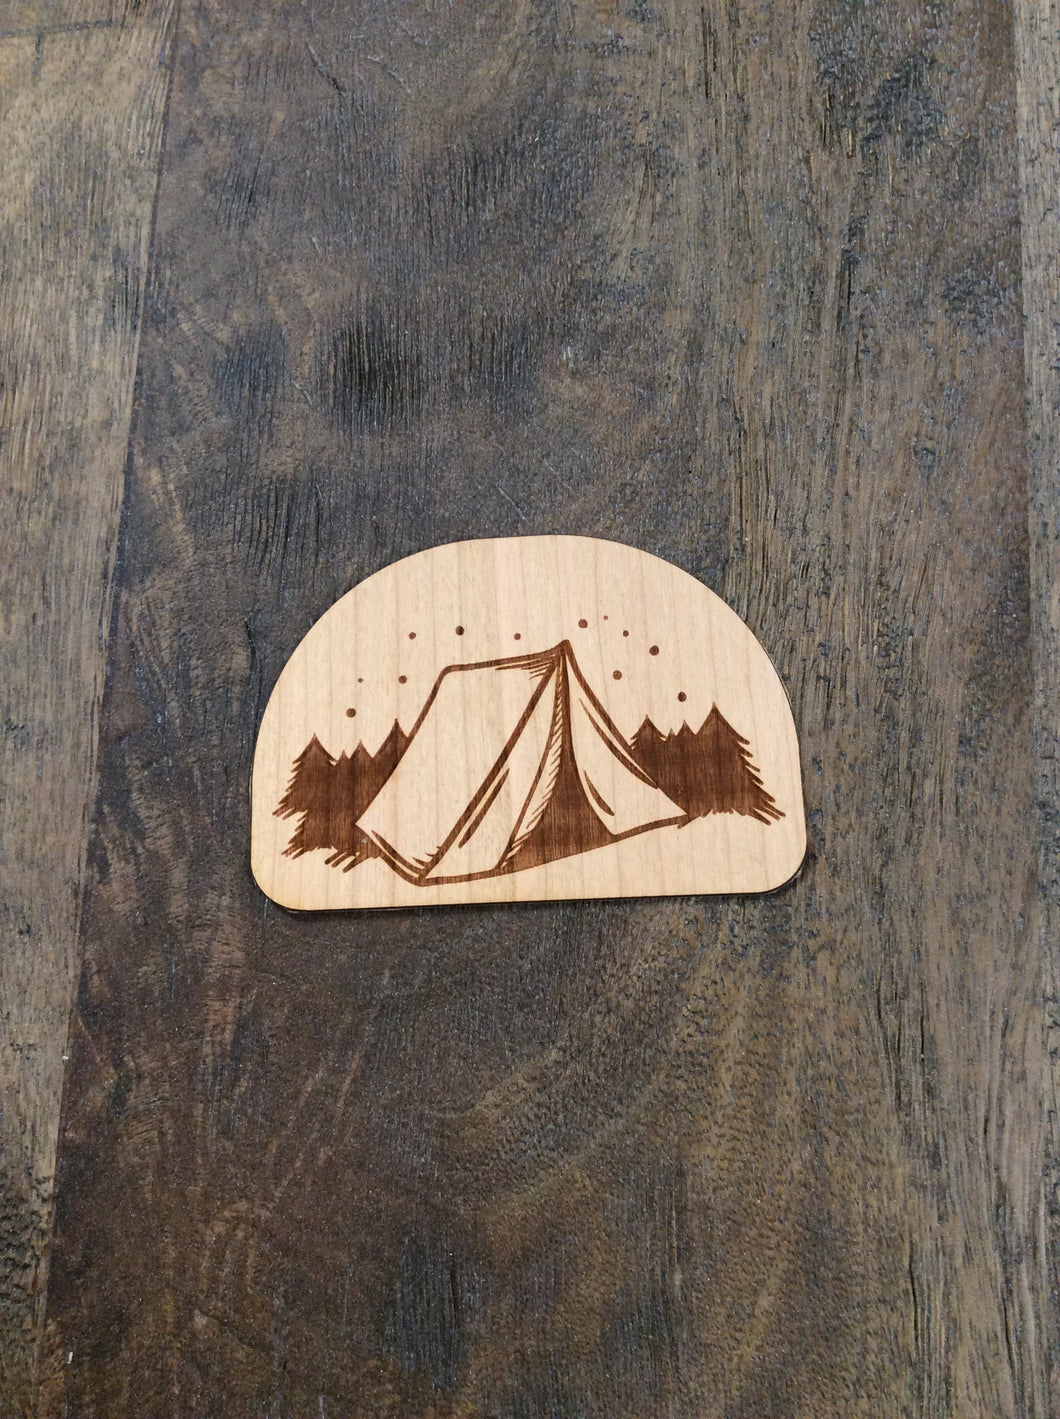 Tent 3D Laser Cut Wood Sticker